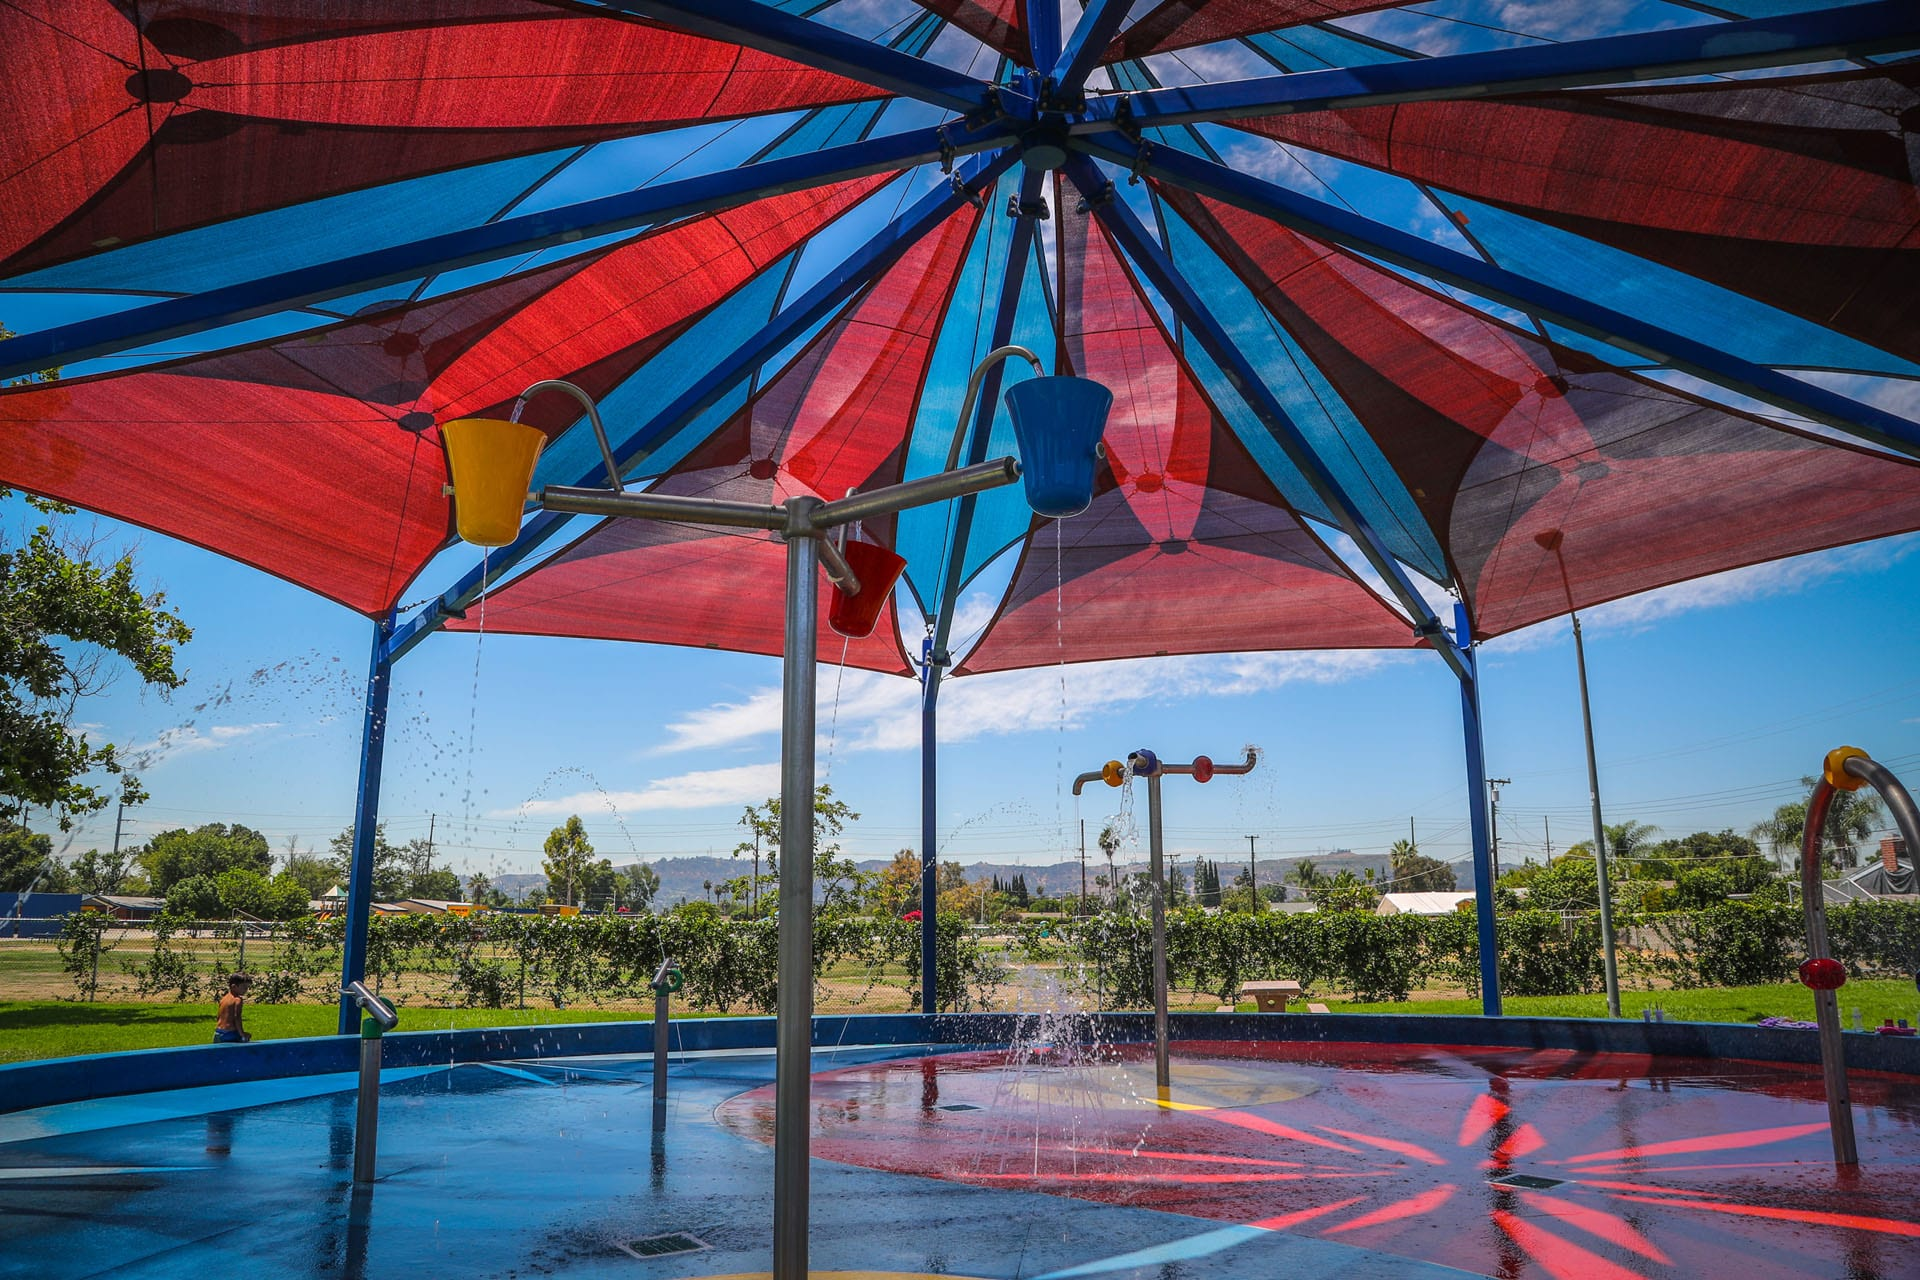 Tent over the splash pad